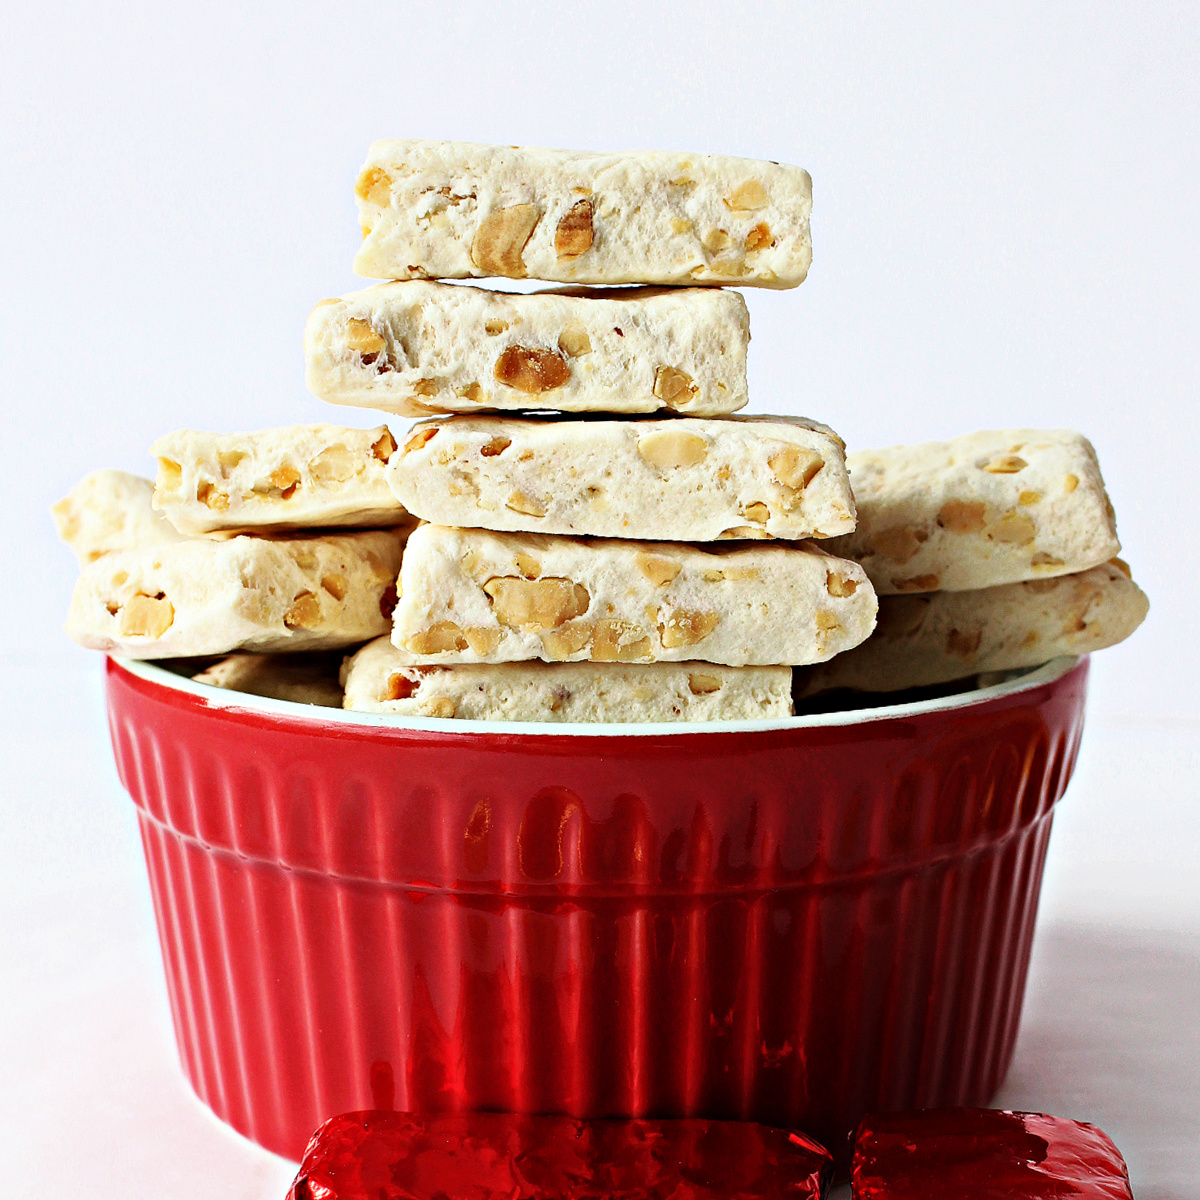 Photo taken from side showing cut edges of stack of milk candy nougat in red bowl.